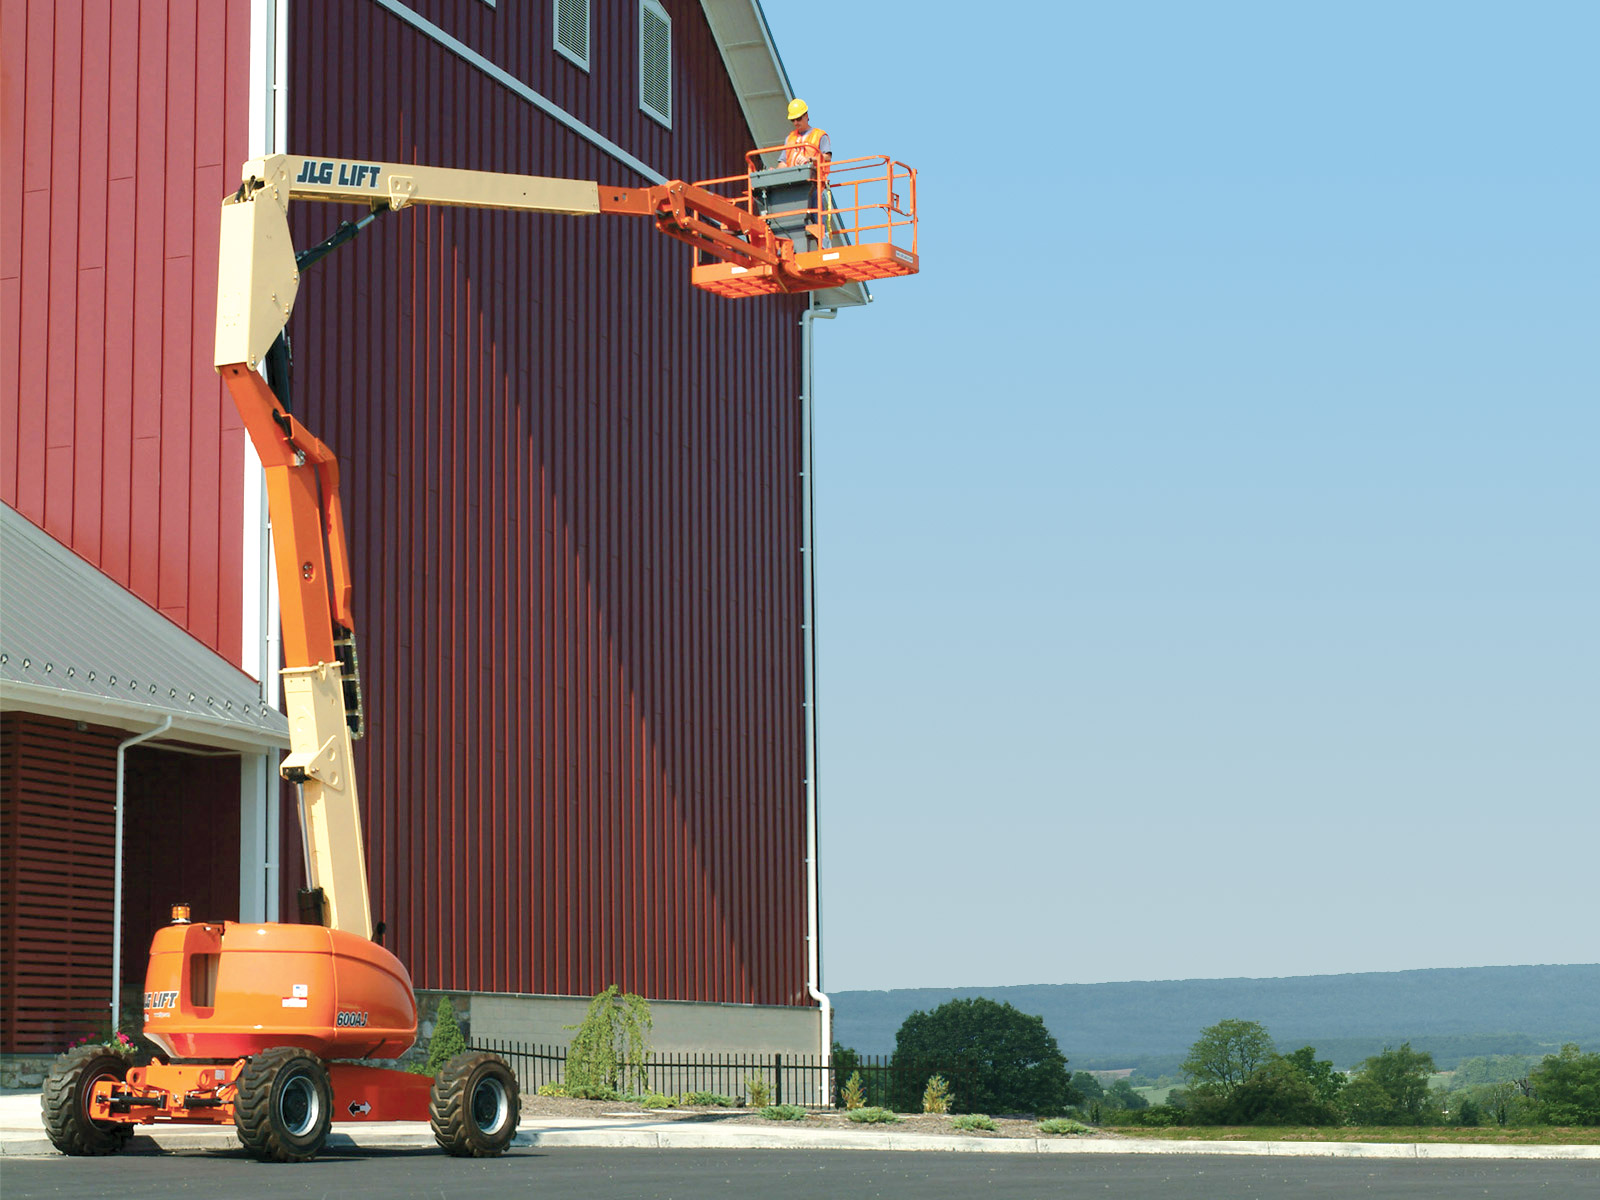 600 series Articulating Boom Lift